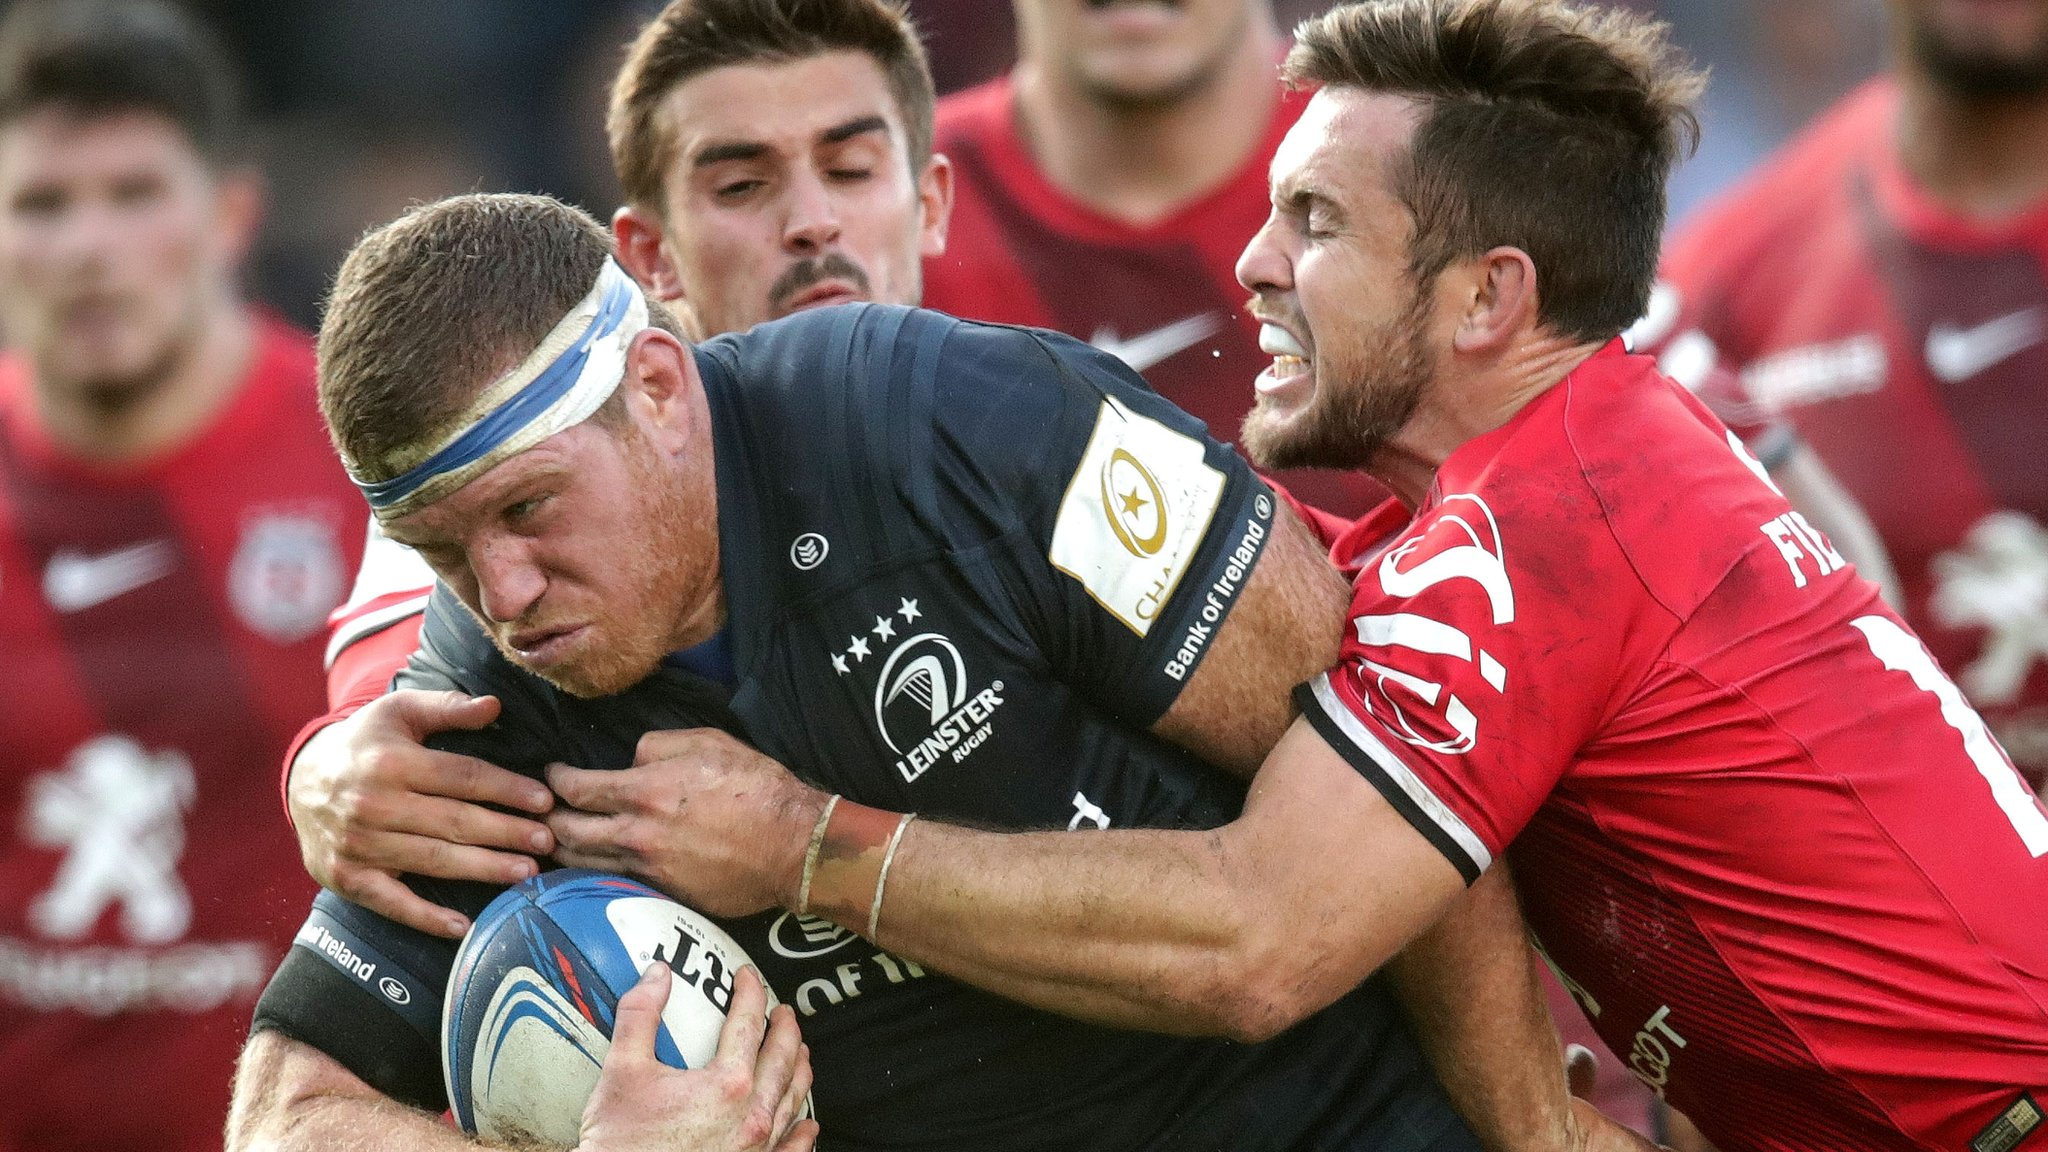 European Champions Cup: Medard scores twice as Toulouse beat Leinster 28-27